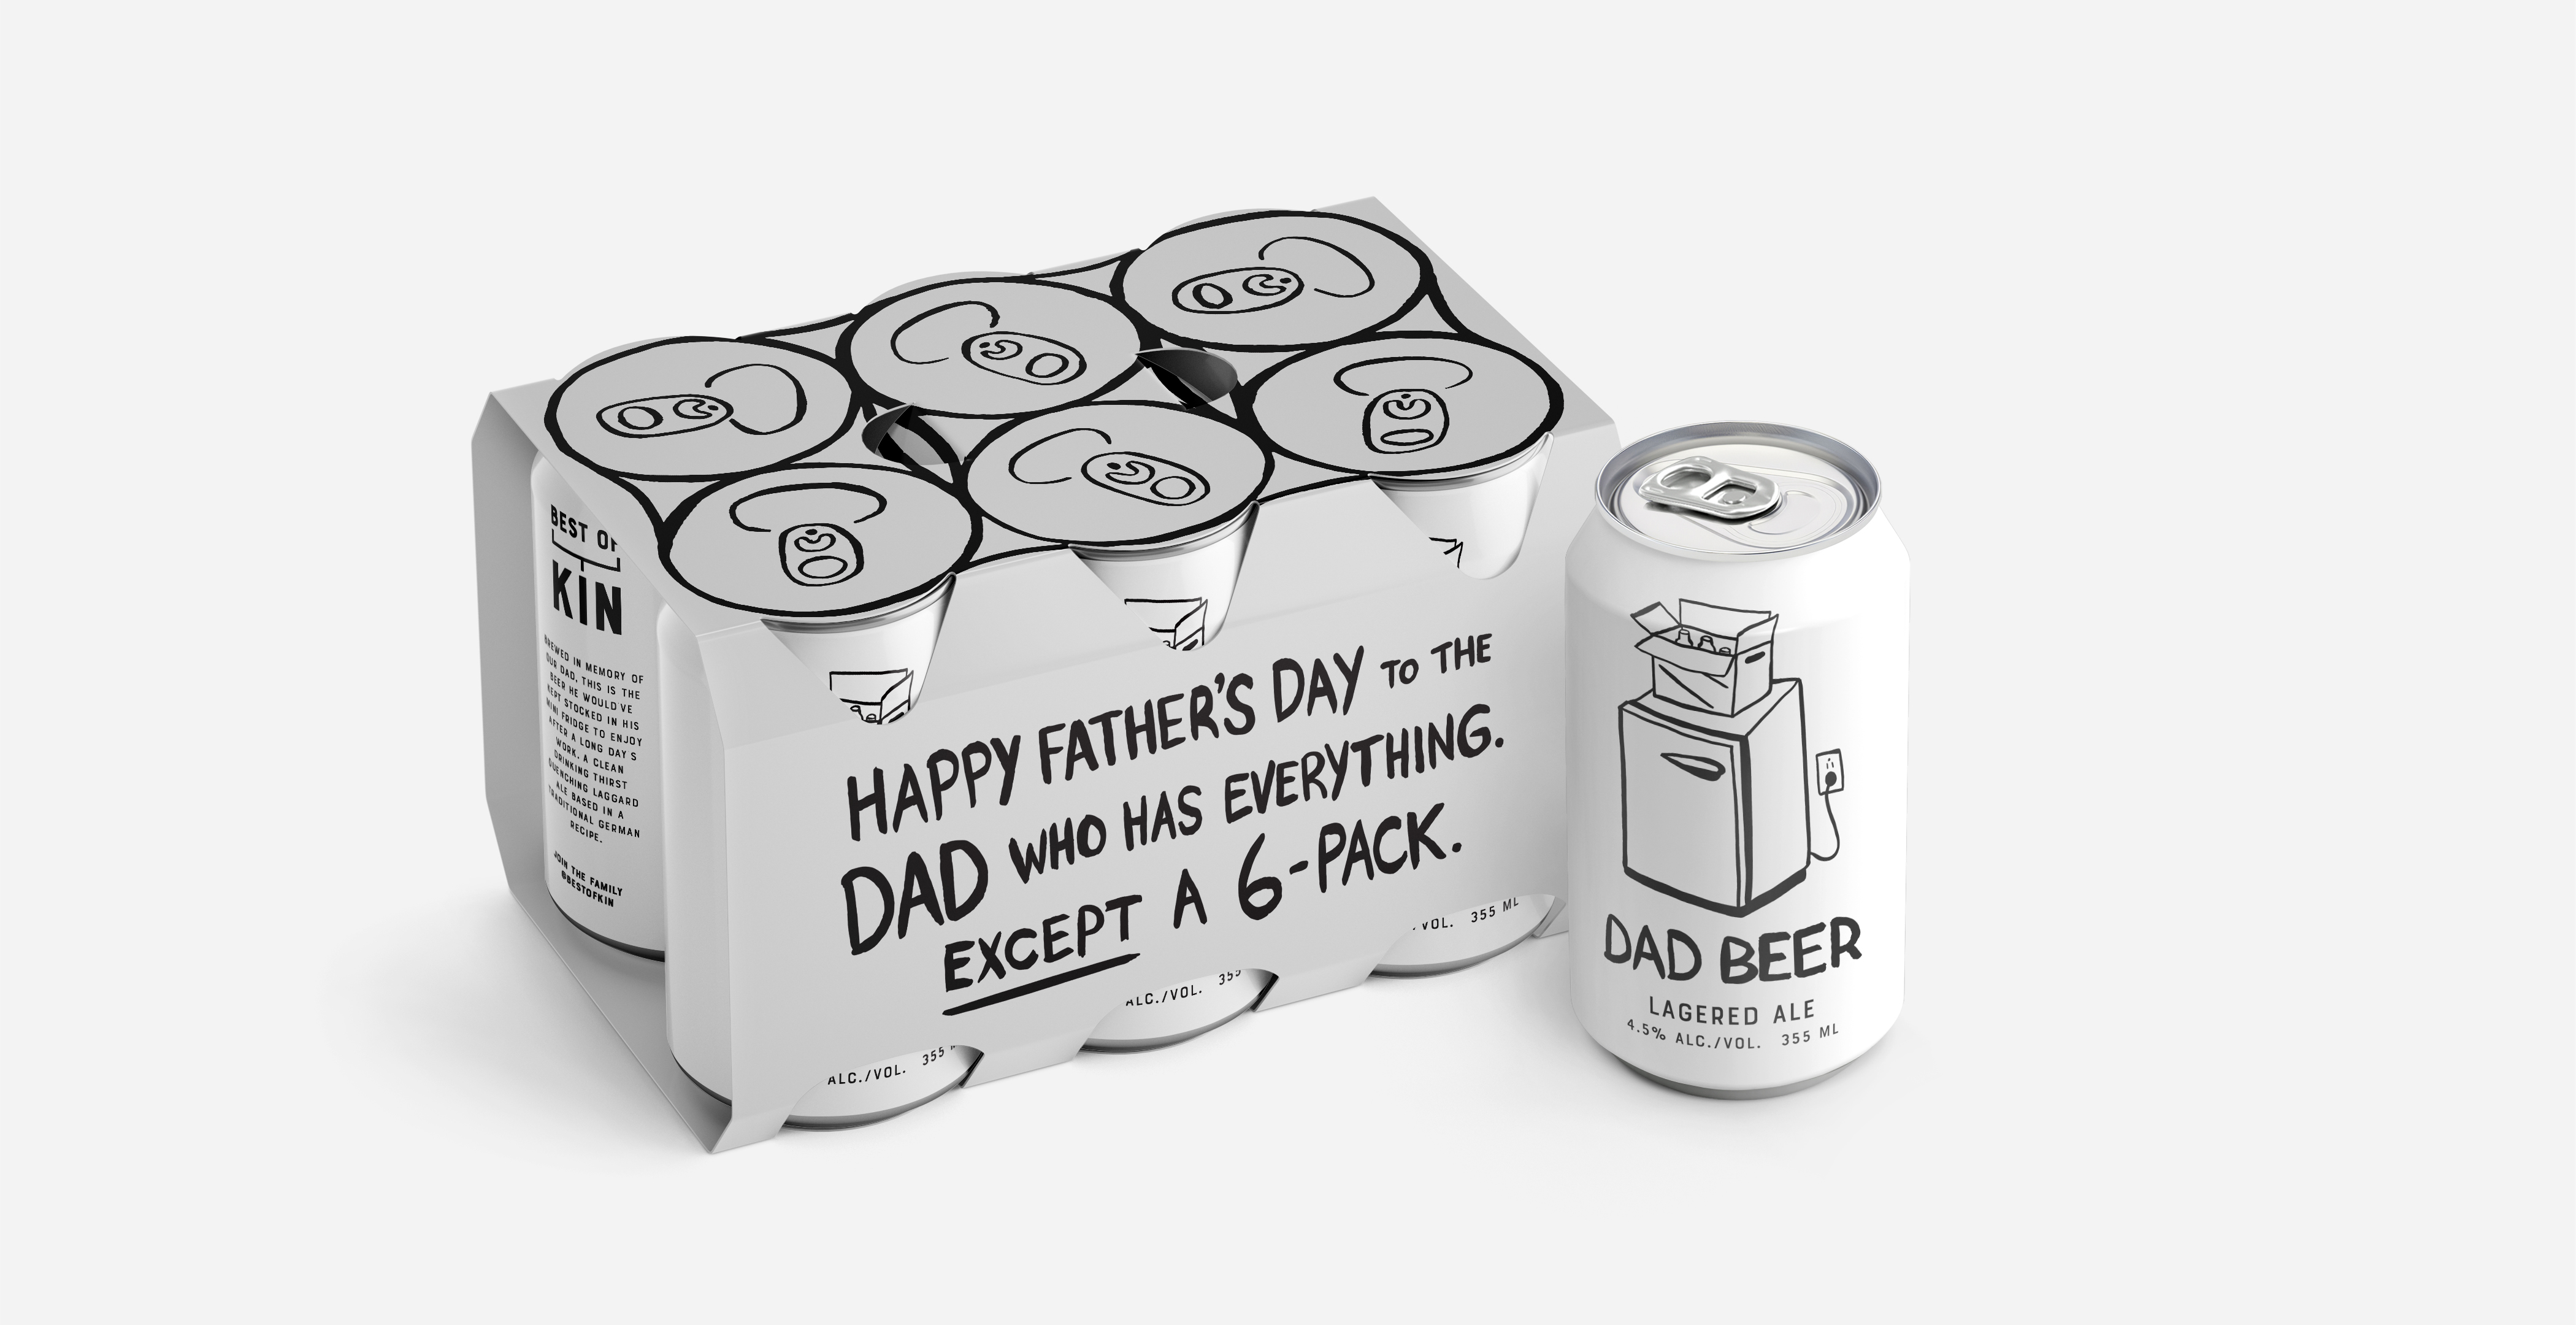 Best Of Kin Turns 'Dad Beer' 6-pack Into Father's Day Greeting Card Designed by Conflict